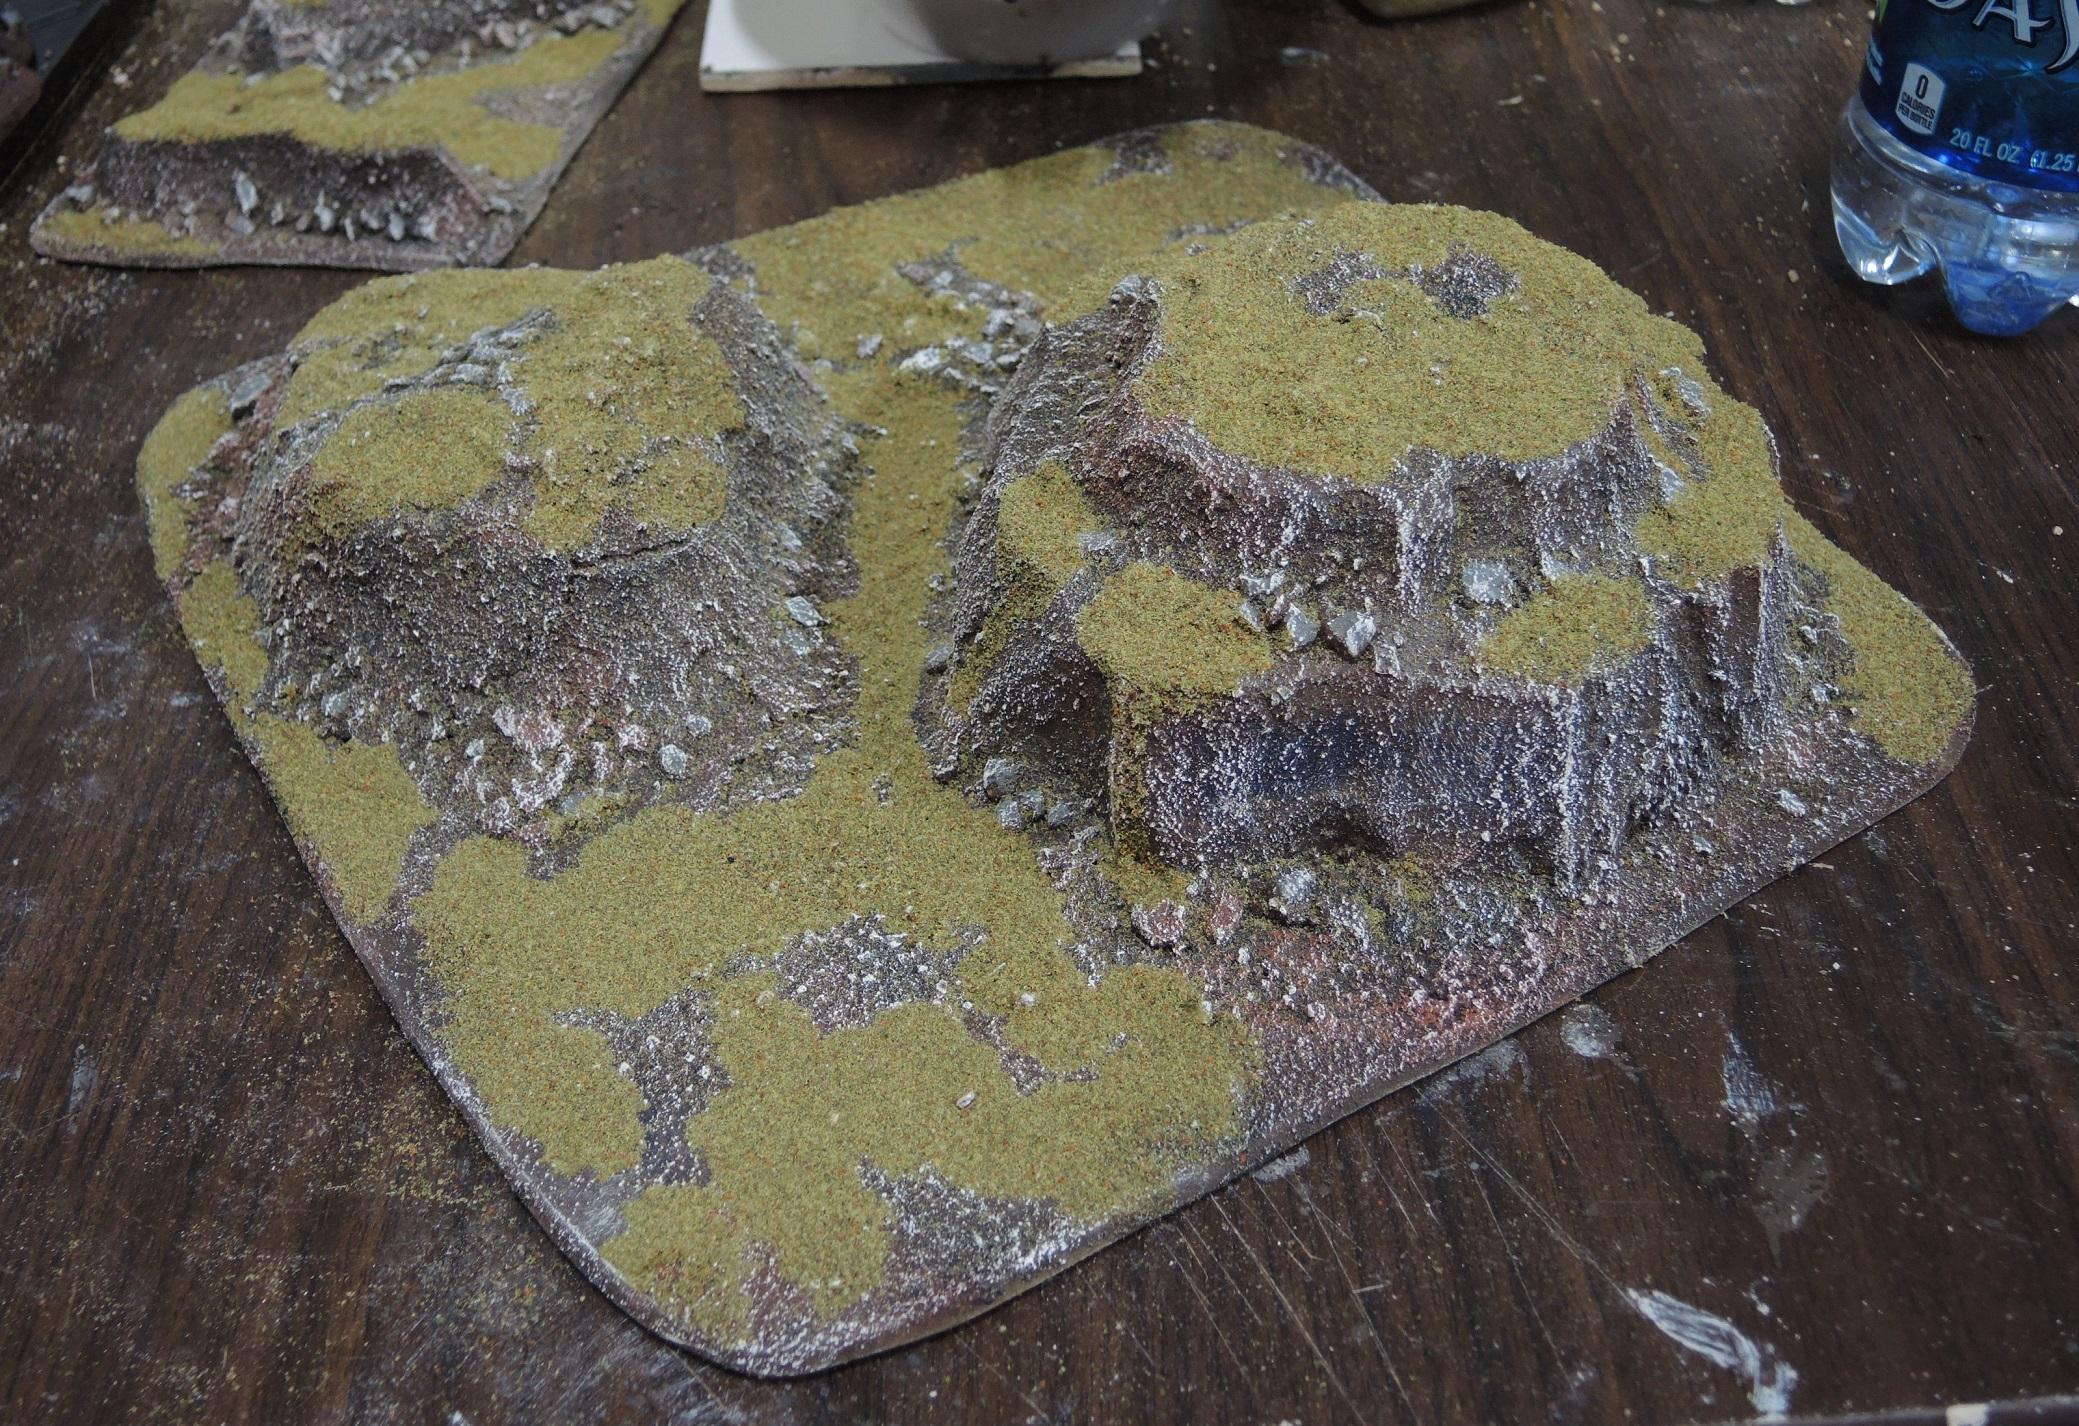 Alien, Big Hill, Buildings, Commission, Crags, Custom, Hills, Huts, Infinity, Jungles, Mountains, N3, Paradiso, Pip, Rocks, Scratch Build, Shanty, Terrain, Waaazag, Warhammer 40,000, Warhammer Fantasy, Work In Progress